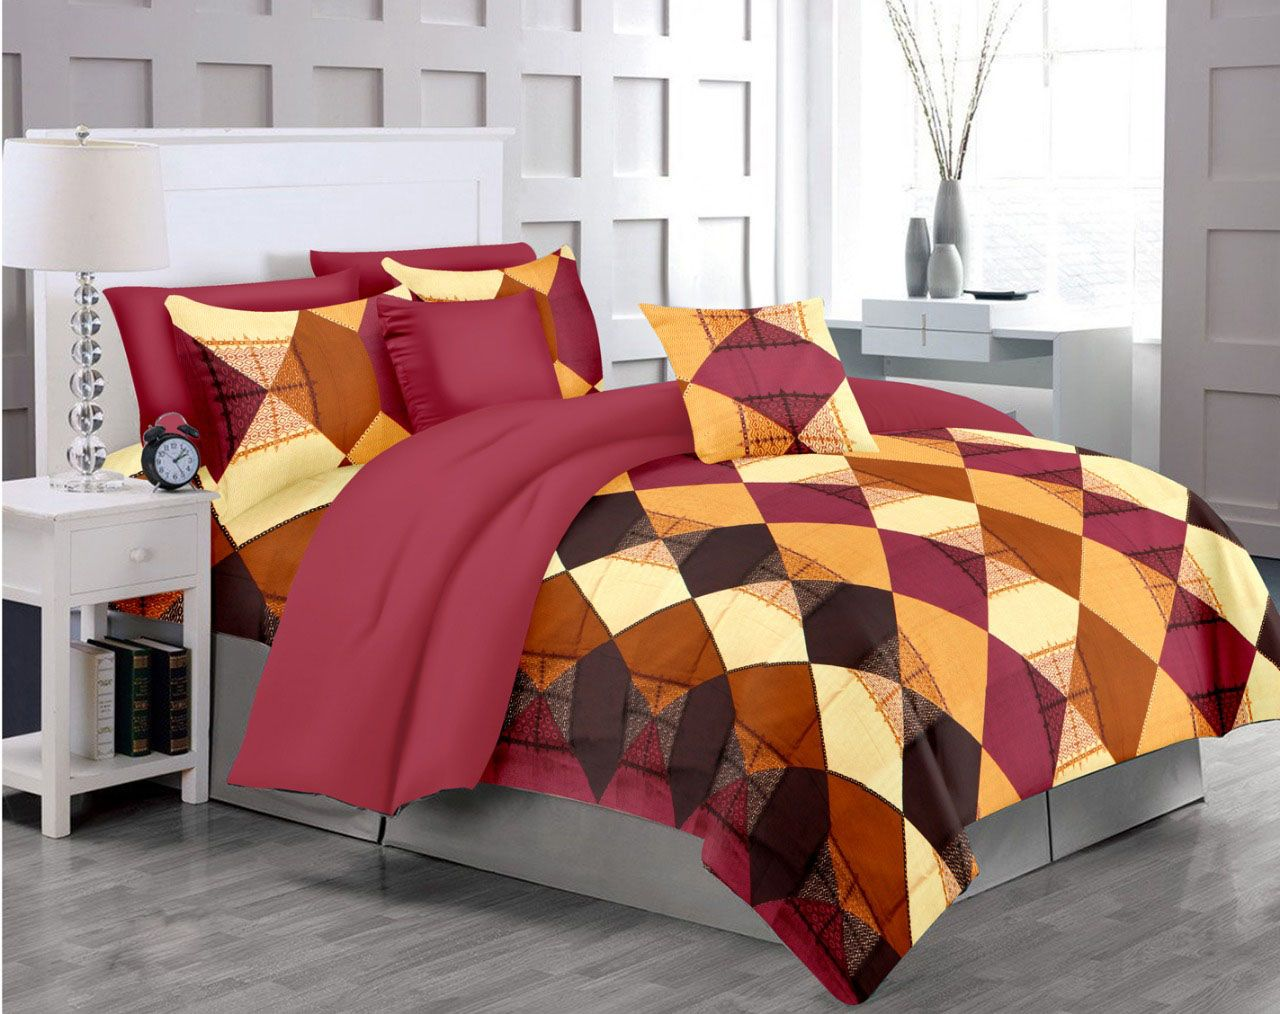 wholesale bedding companies in 2020 Wholesale bedding